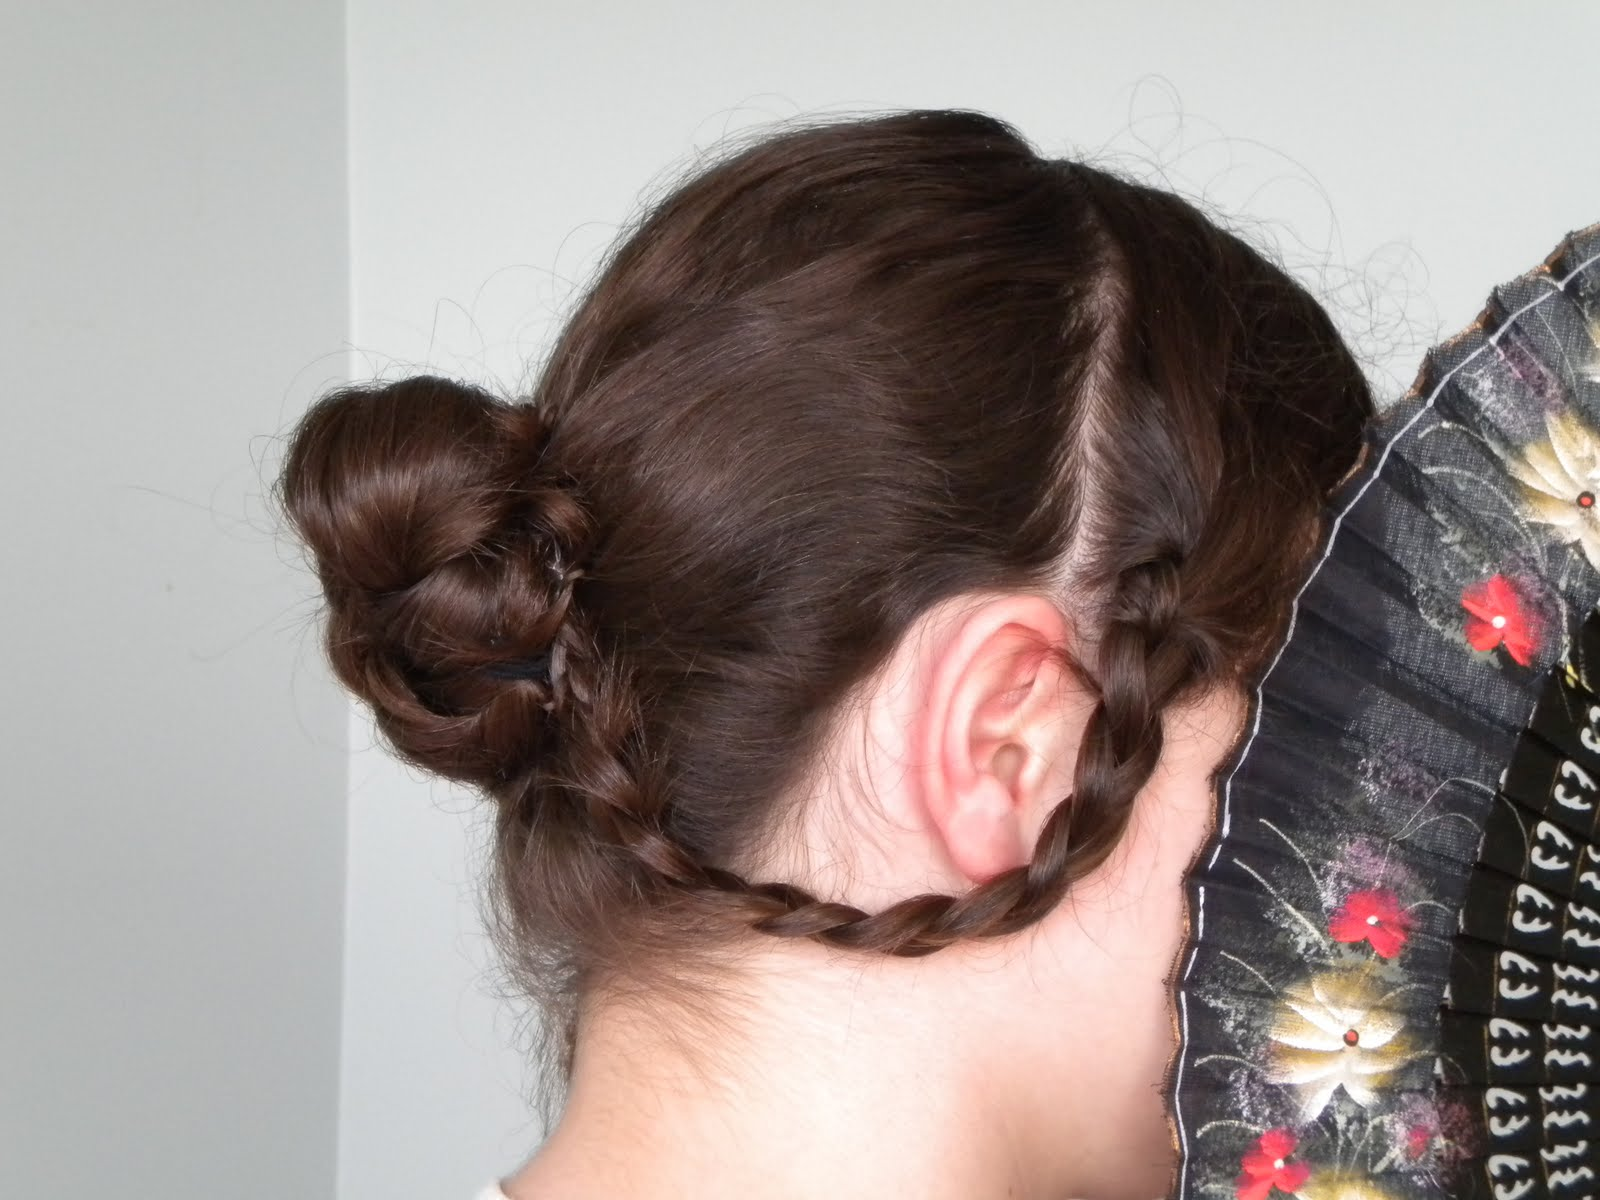 Hair Styles: Braided Victorian Hairstyle